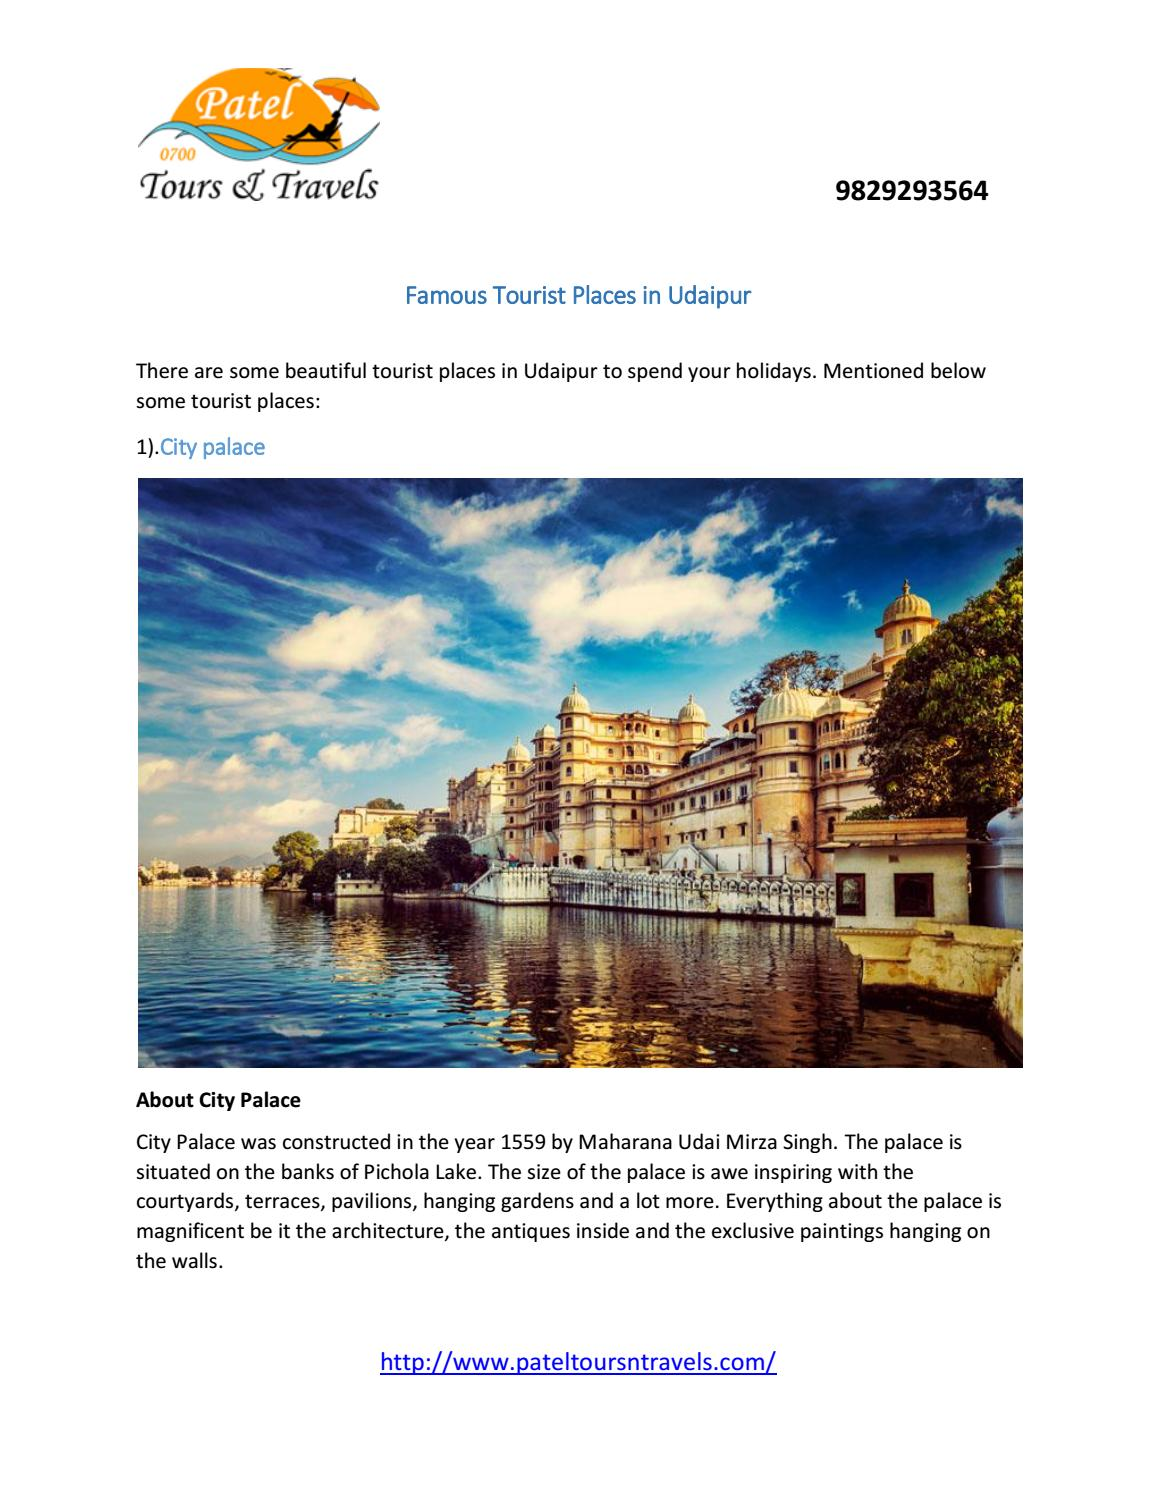 Famous Tourist Places in Udaipur by akshita_mehta - issuu